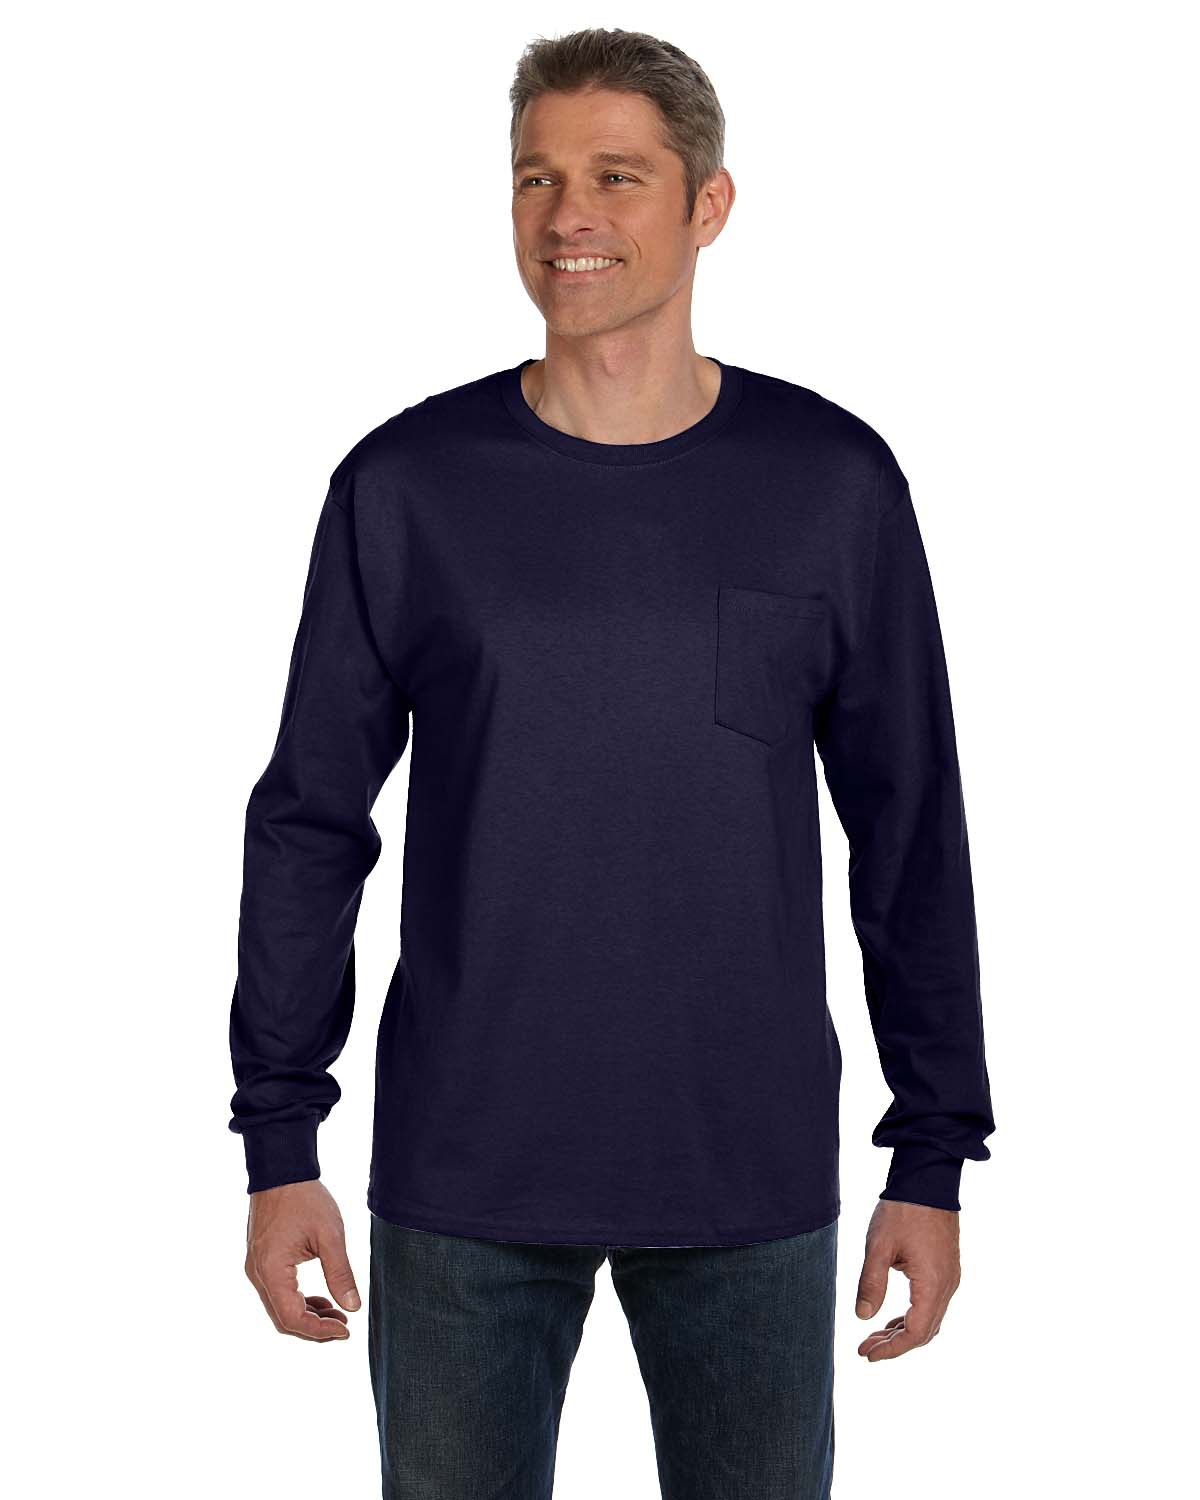 Hanes 5596  Tagless 6.1 oz. Long Sleeve T-Shirt w/ a ...